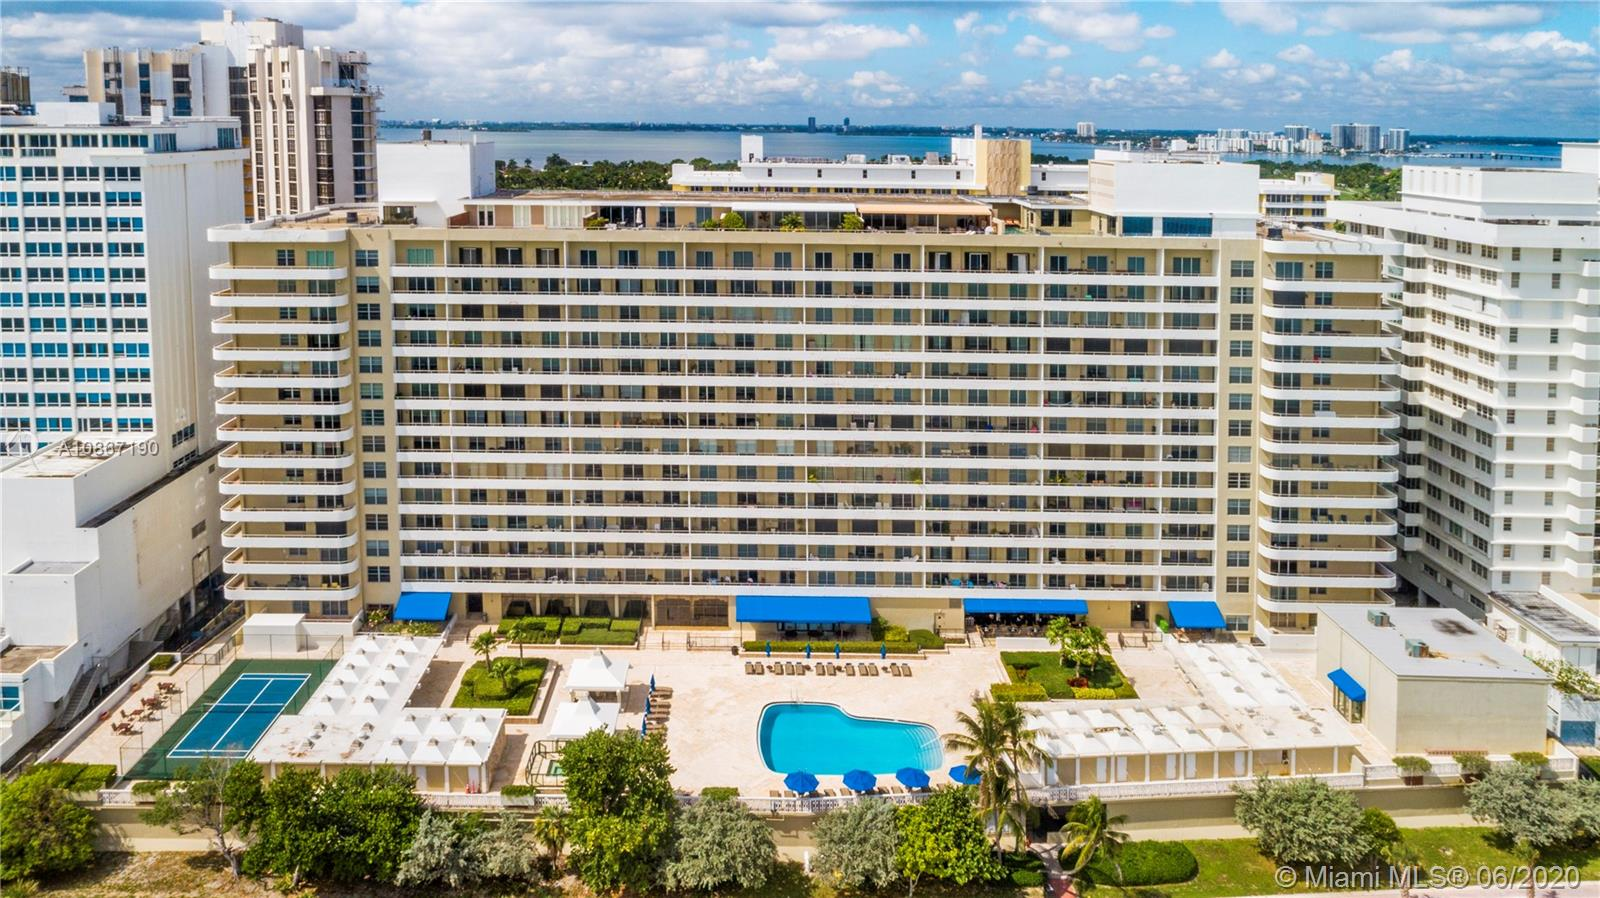 Elegantly remodeled unit in the heart of Millionaire's Row. Enjoy beautiful Sunsets, Intercostal, and City Views. This 1,048 SF unit features 2 bedrooms & 2 full bathrooms, it's fully renovated from floor to ceiling. Oceanside Plaza condo designed by Morris Lapidus offers resort's style amenities include beach service, pool, fitness center, squash and basketball courts, restaurant, billiards room, and direct access to the recently completed beach walk, connecting to South Beach. On-site restaurant, Lola Restaurant is a delicious Argentine cuisine restaurant located on the mezzanine floor. Maintenance Includes Basic Cable, Water, Sewer, Hot Water, Building Insurance, AC Cooling Tower. Enjoy South Florida living at its best.